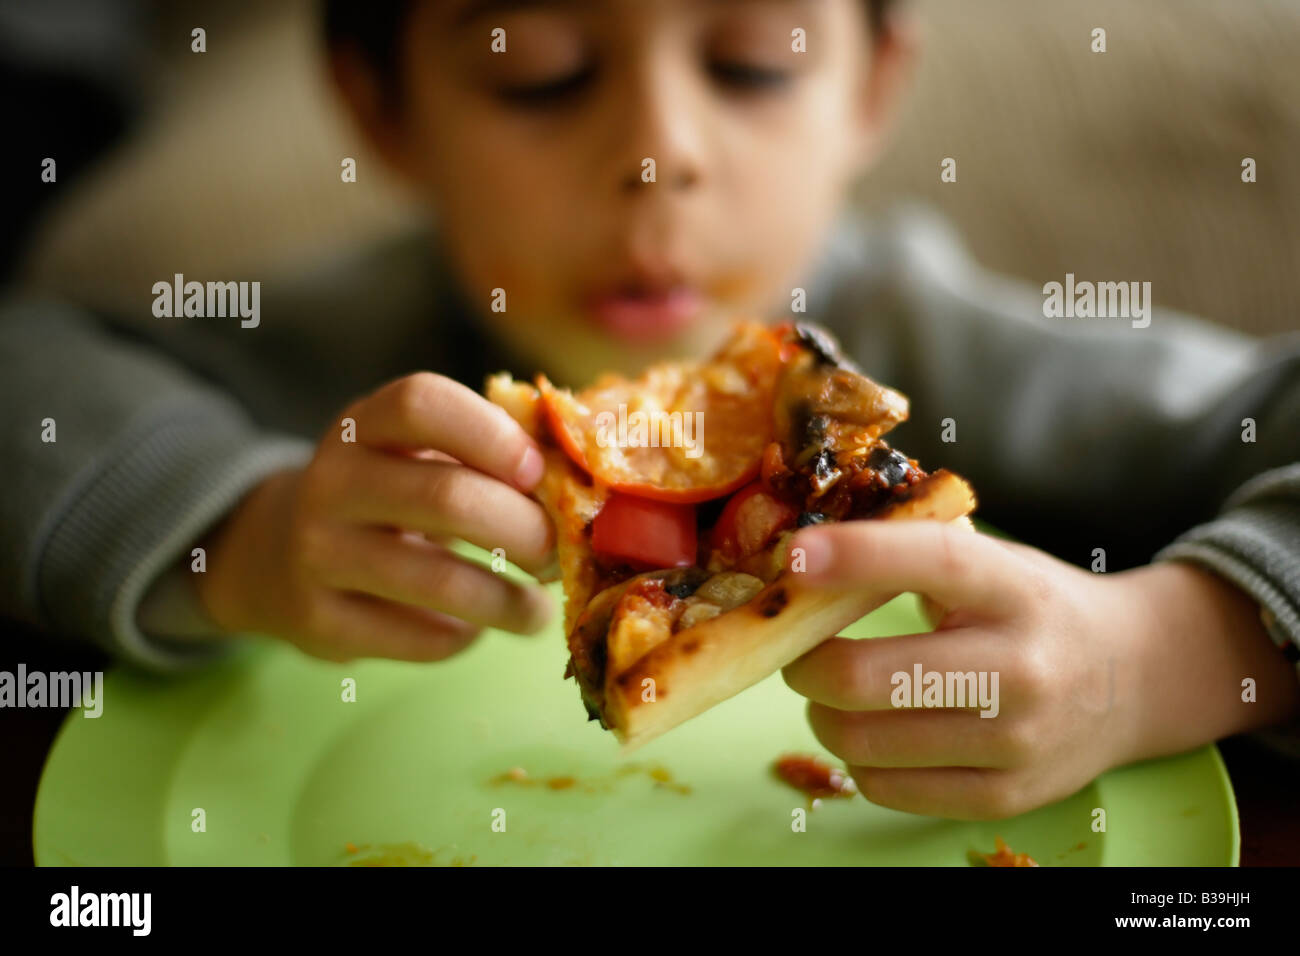 Homemade Pizza Six year old boy tucks into a slice of his mother s home cooking Mixed race Indian ethnic - Stock Image